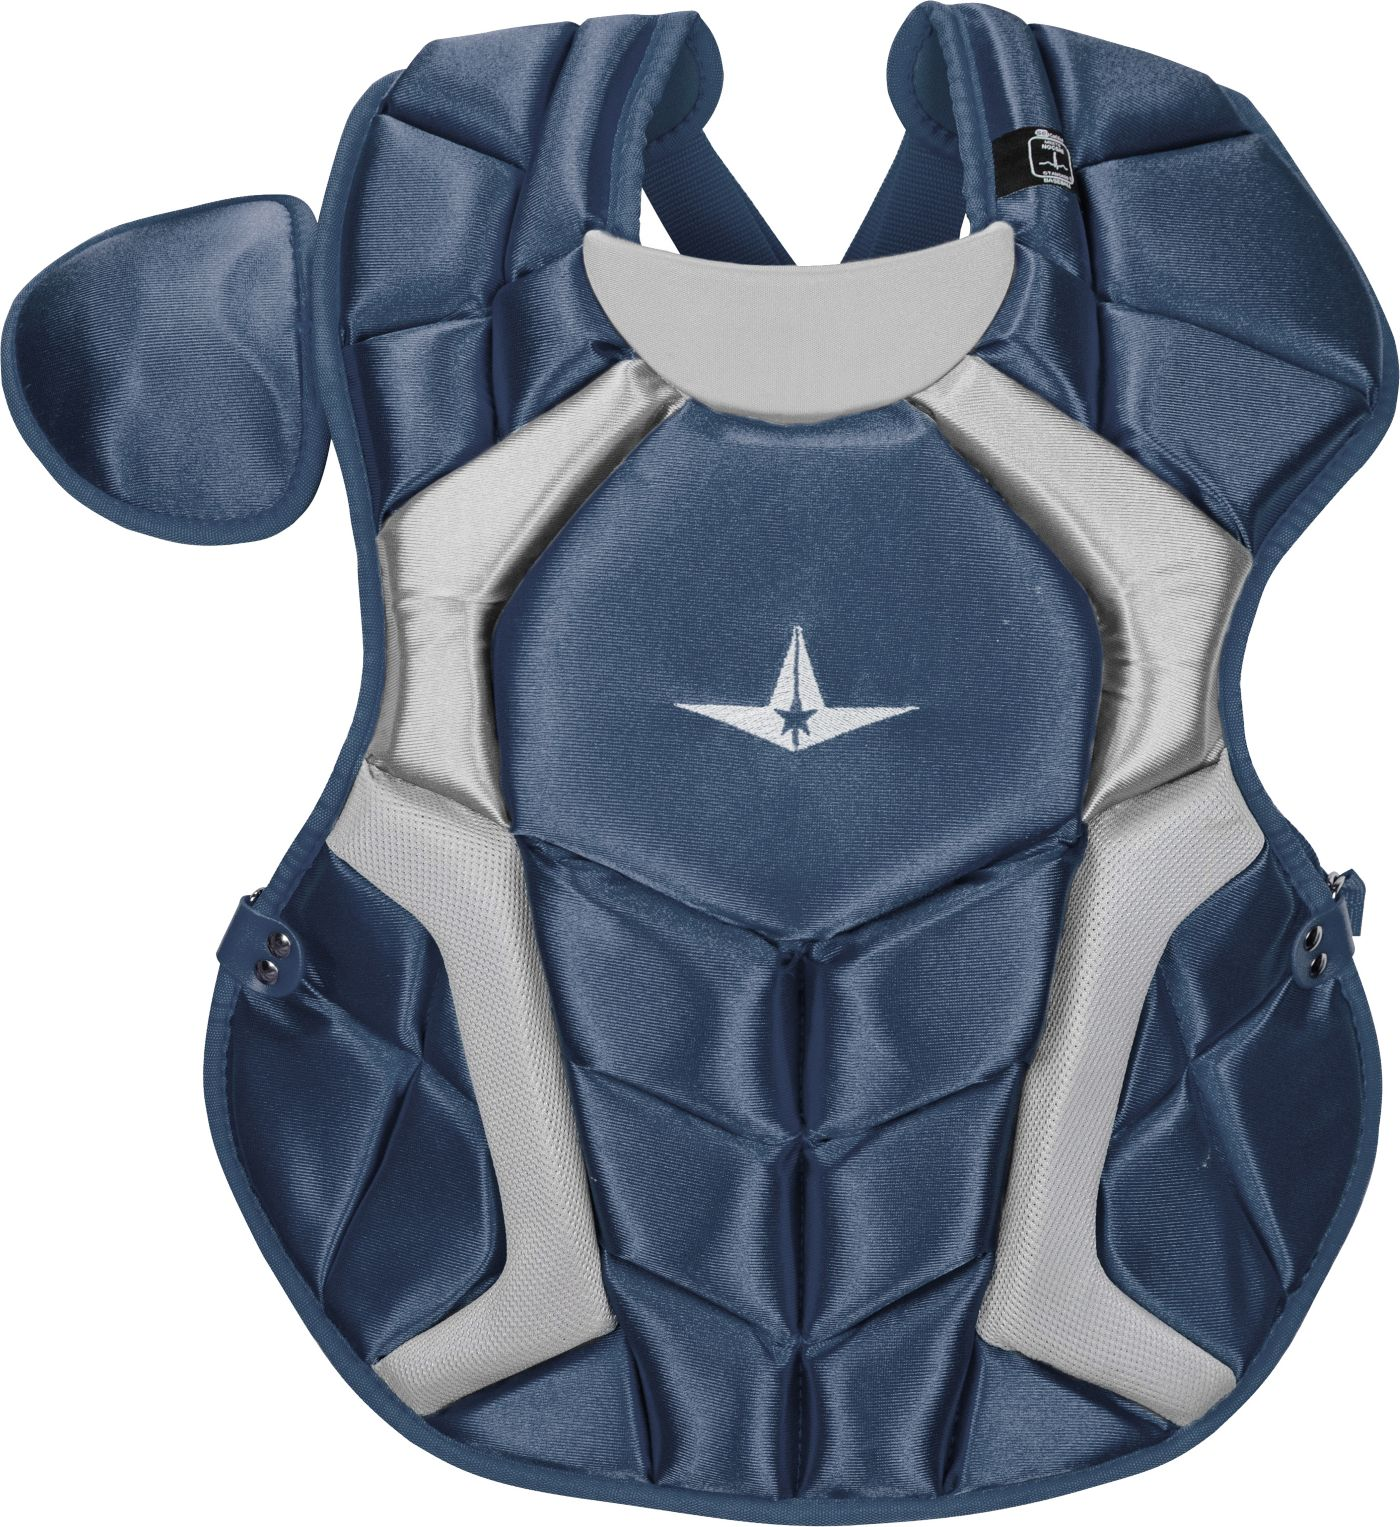 All-Star Intermediate 15.5'' Player Series Chest Protector